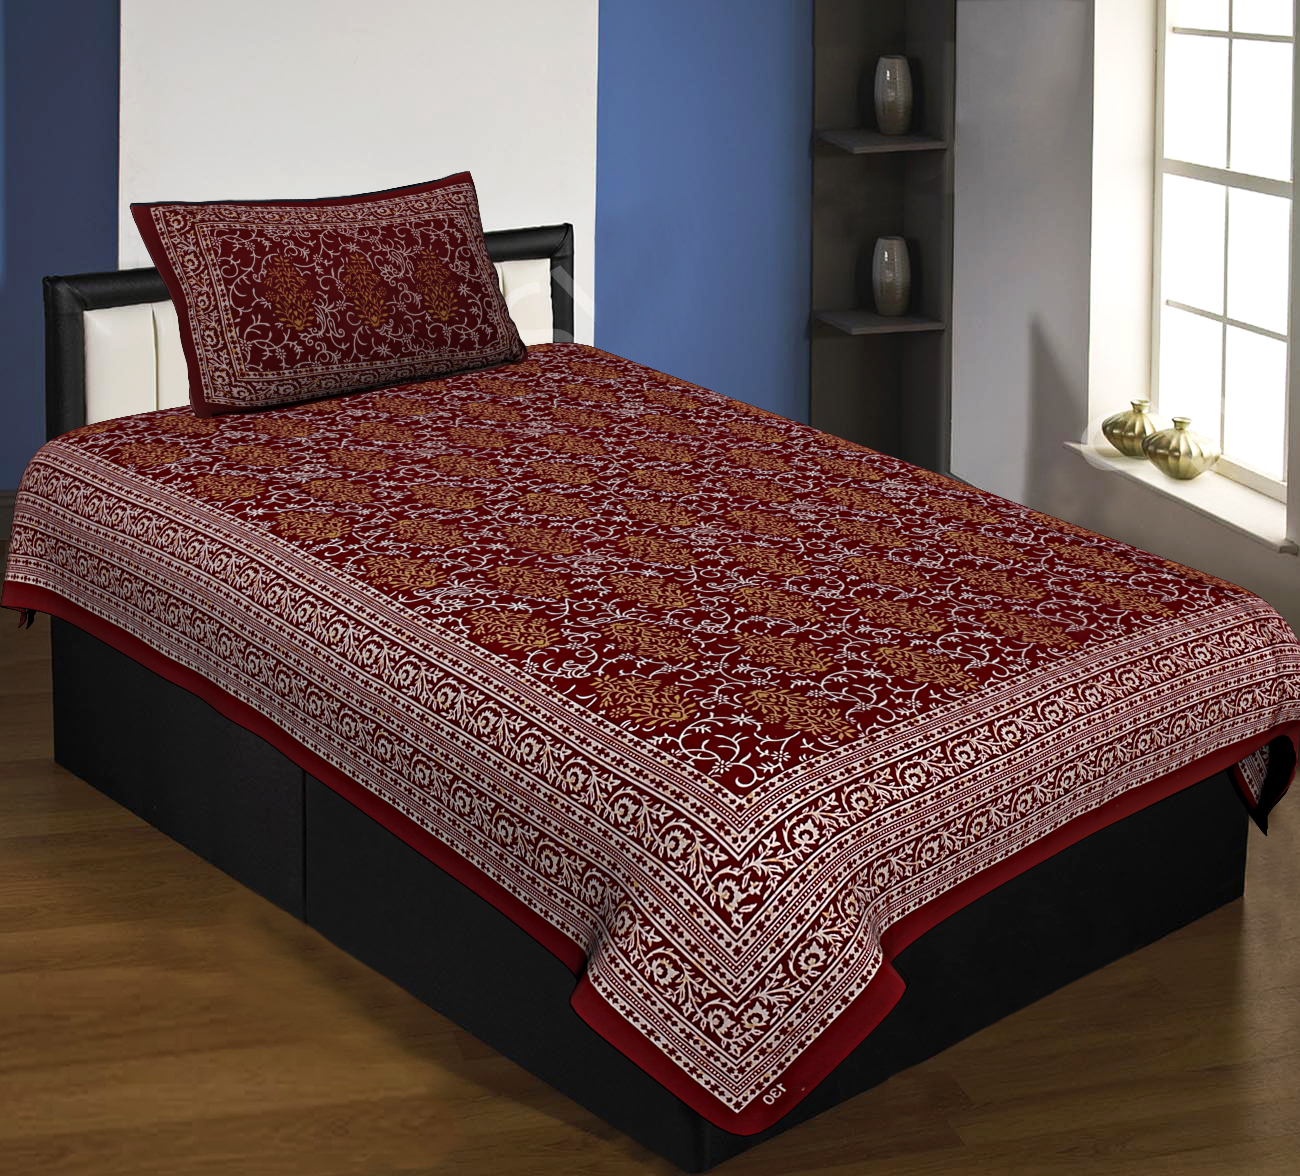 Floral Single Bedsheet Maroon with 2 Pillow Covers